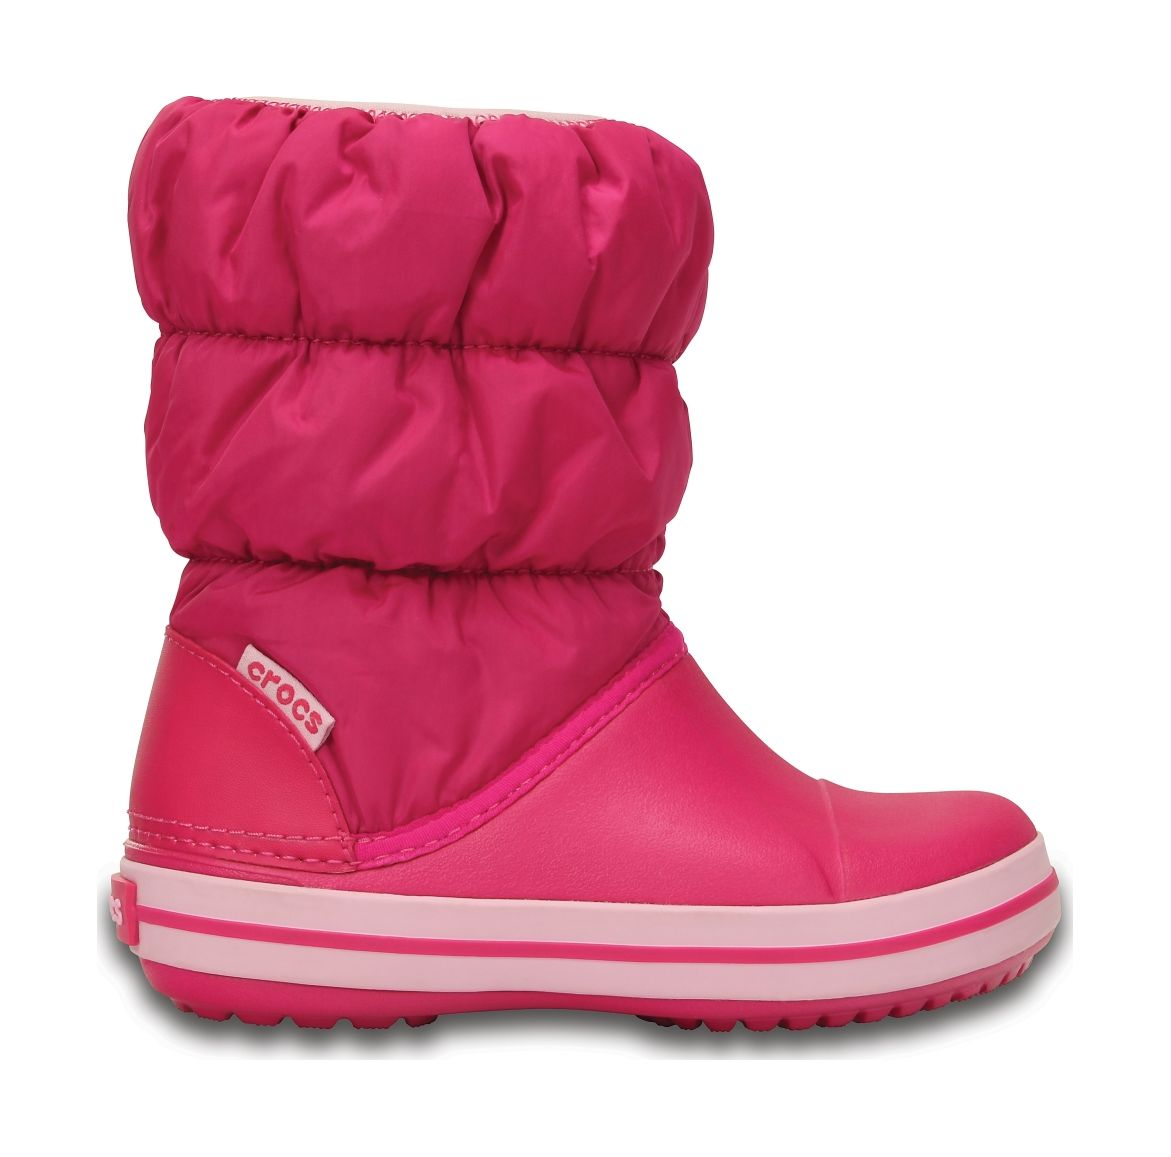 Crocs™ Kids' Winter Puff Boot Candy Pink 33,5